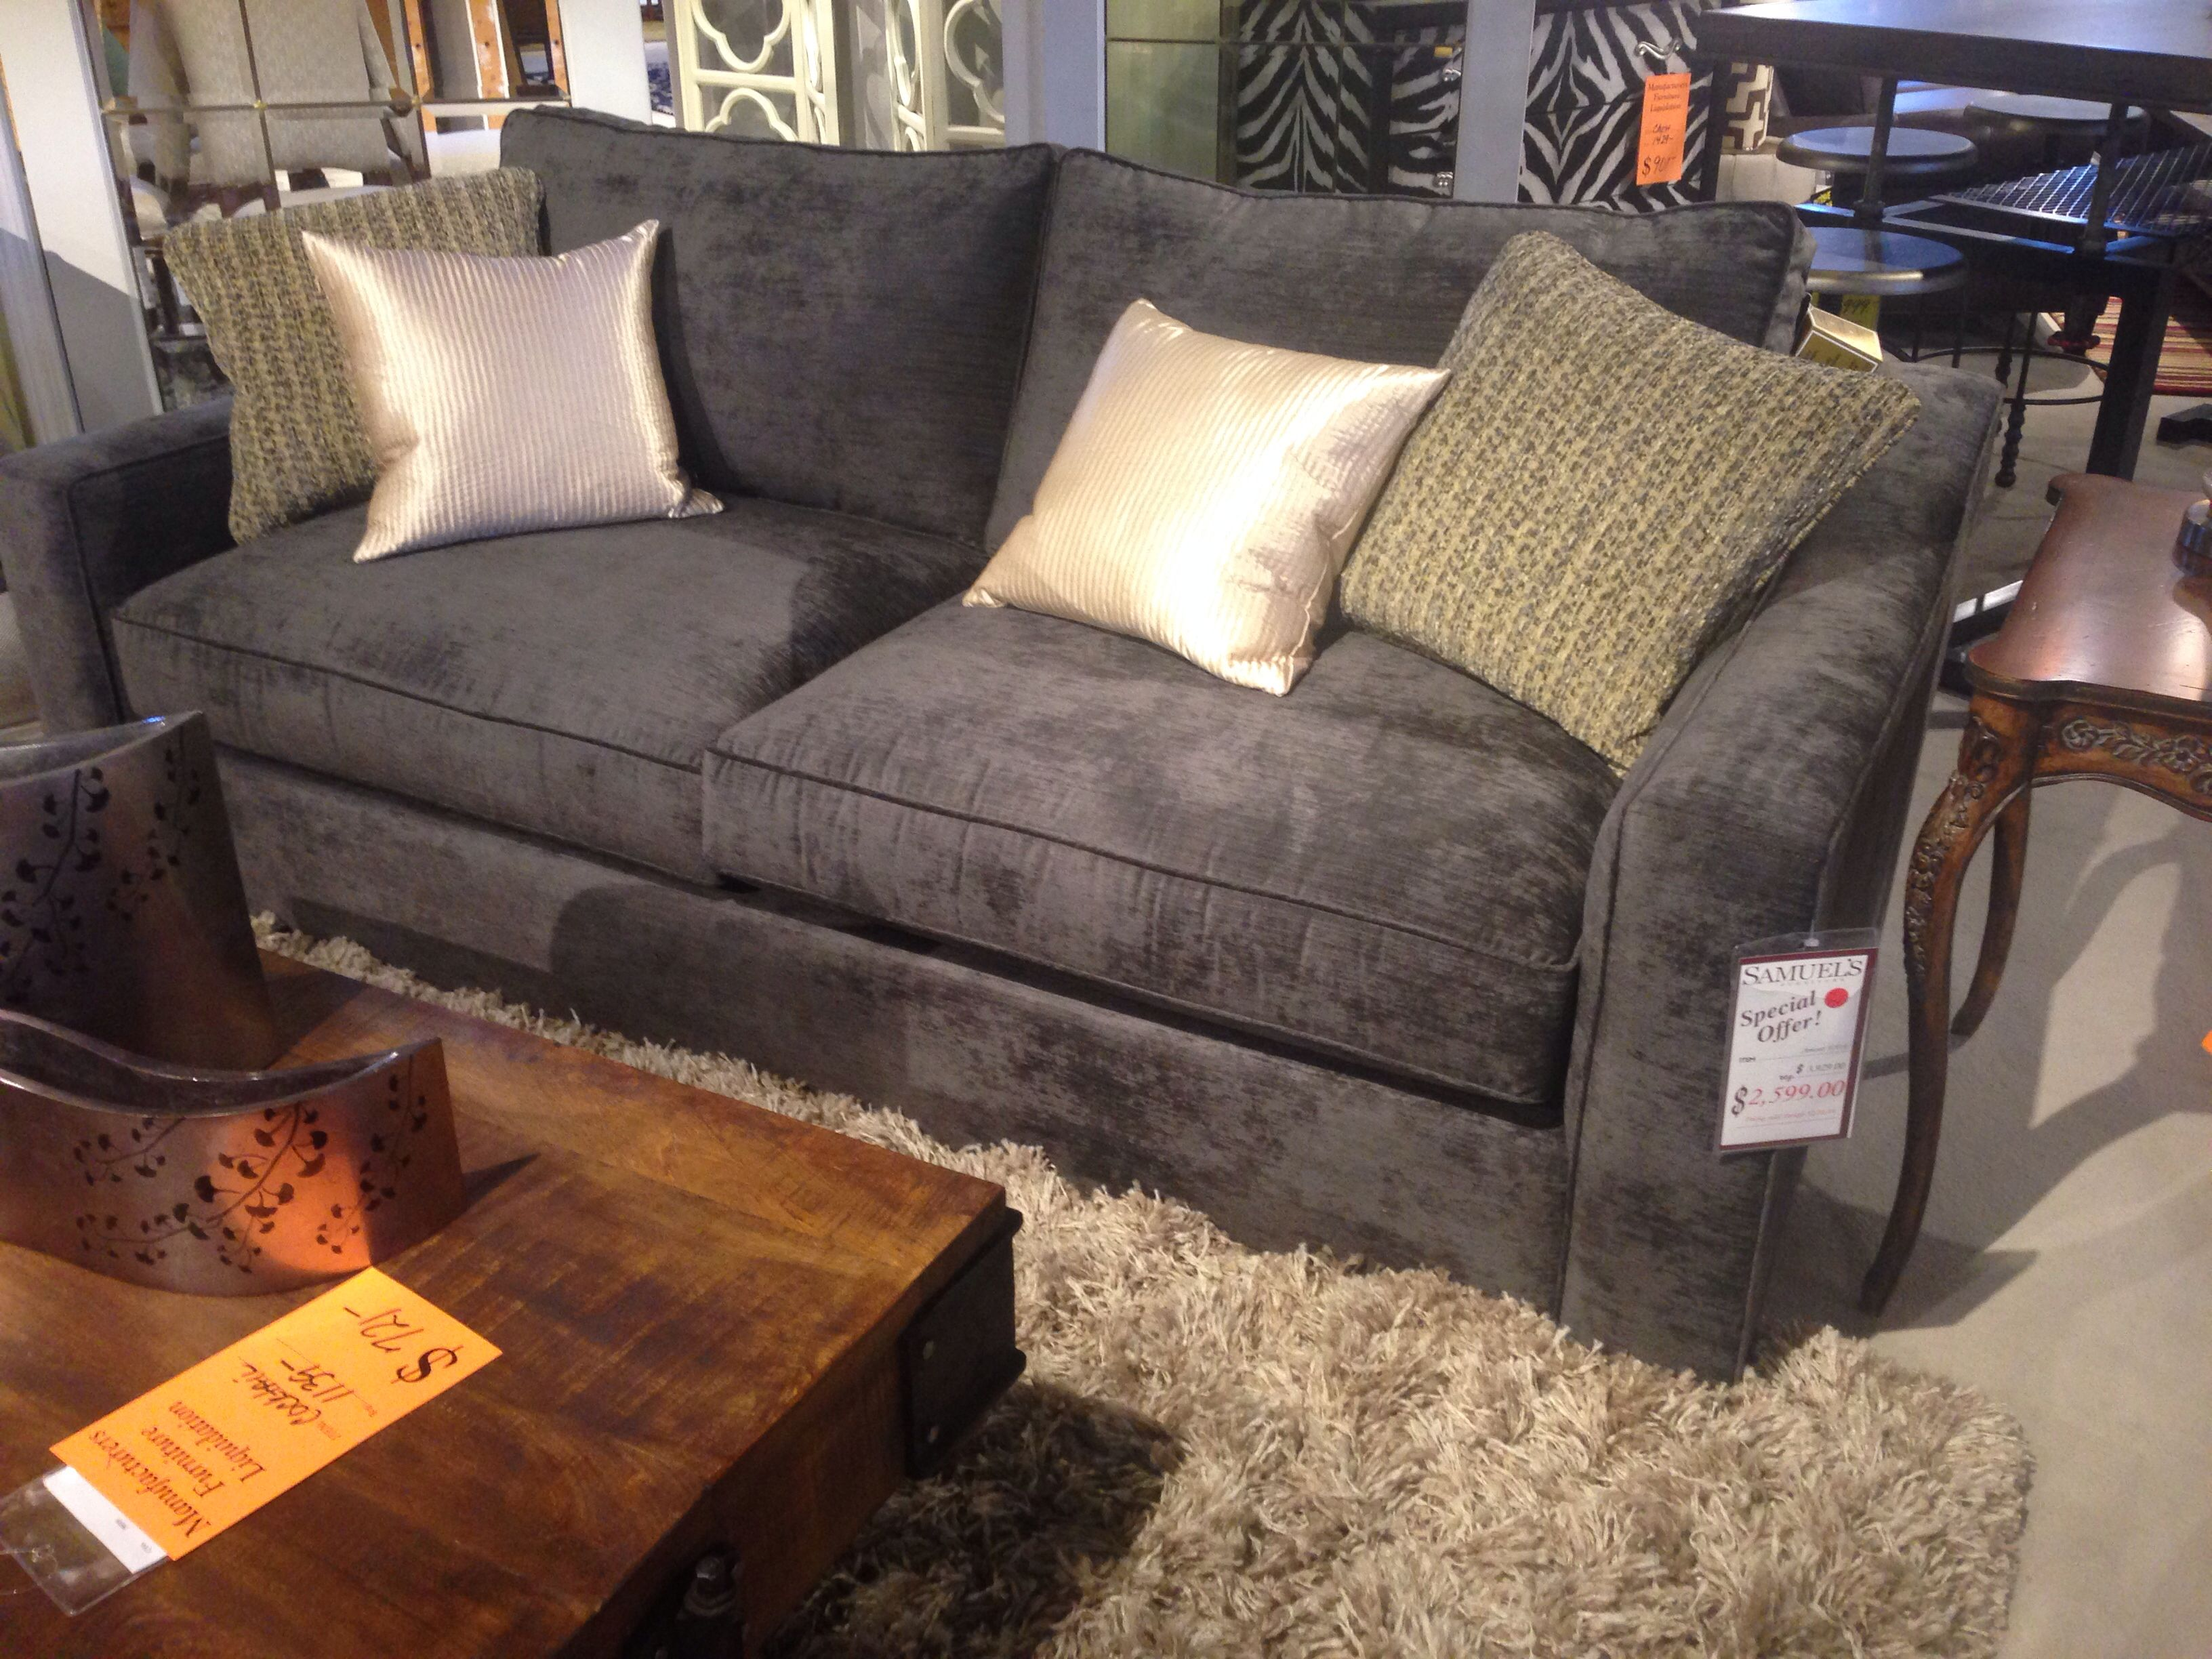 Comfort and style from Century furniture